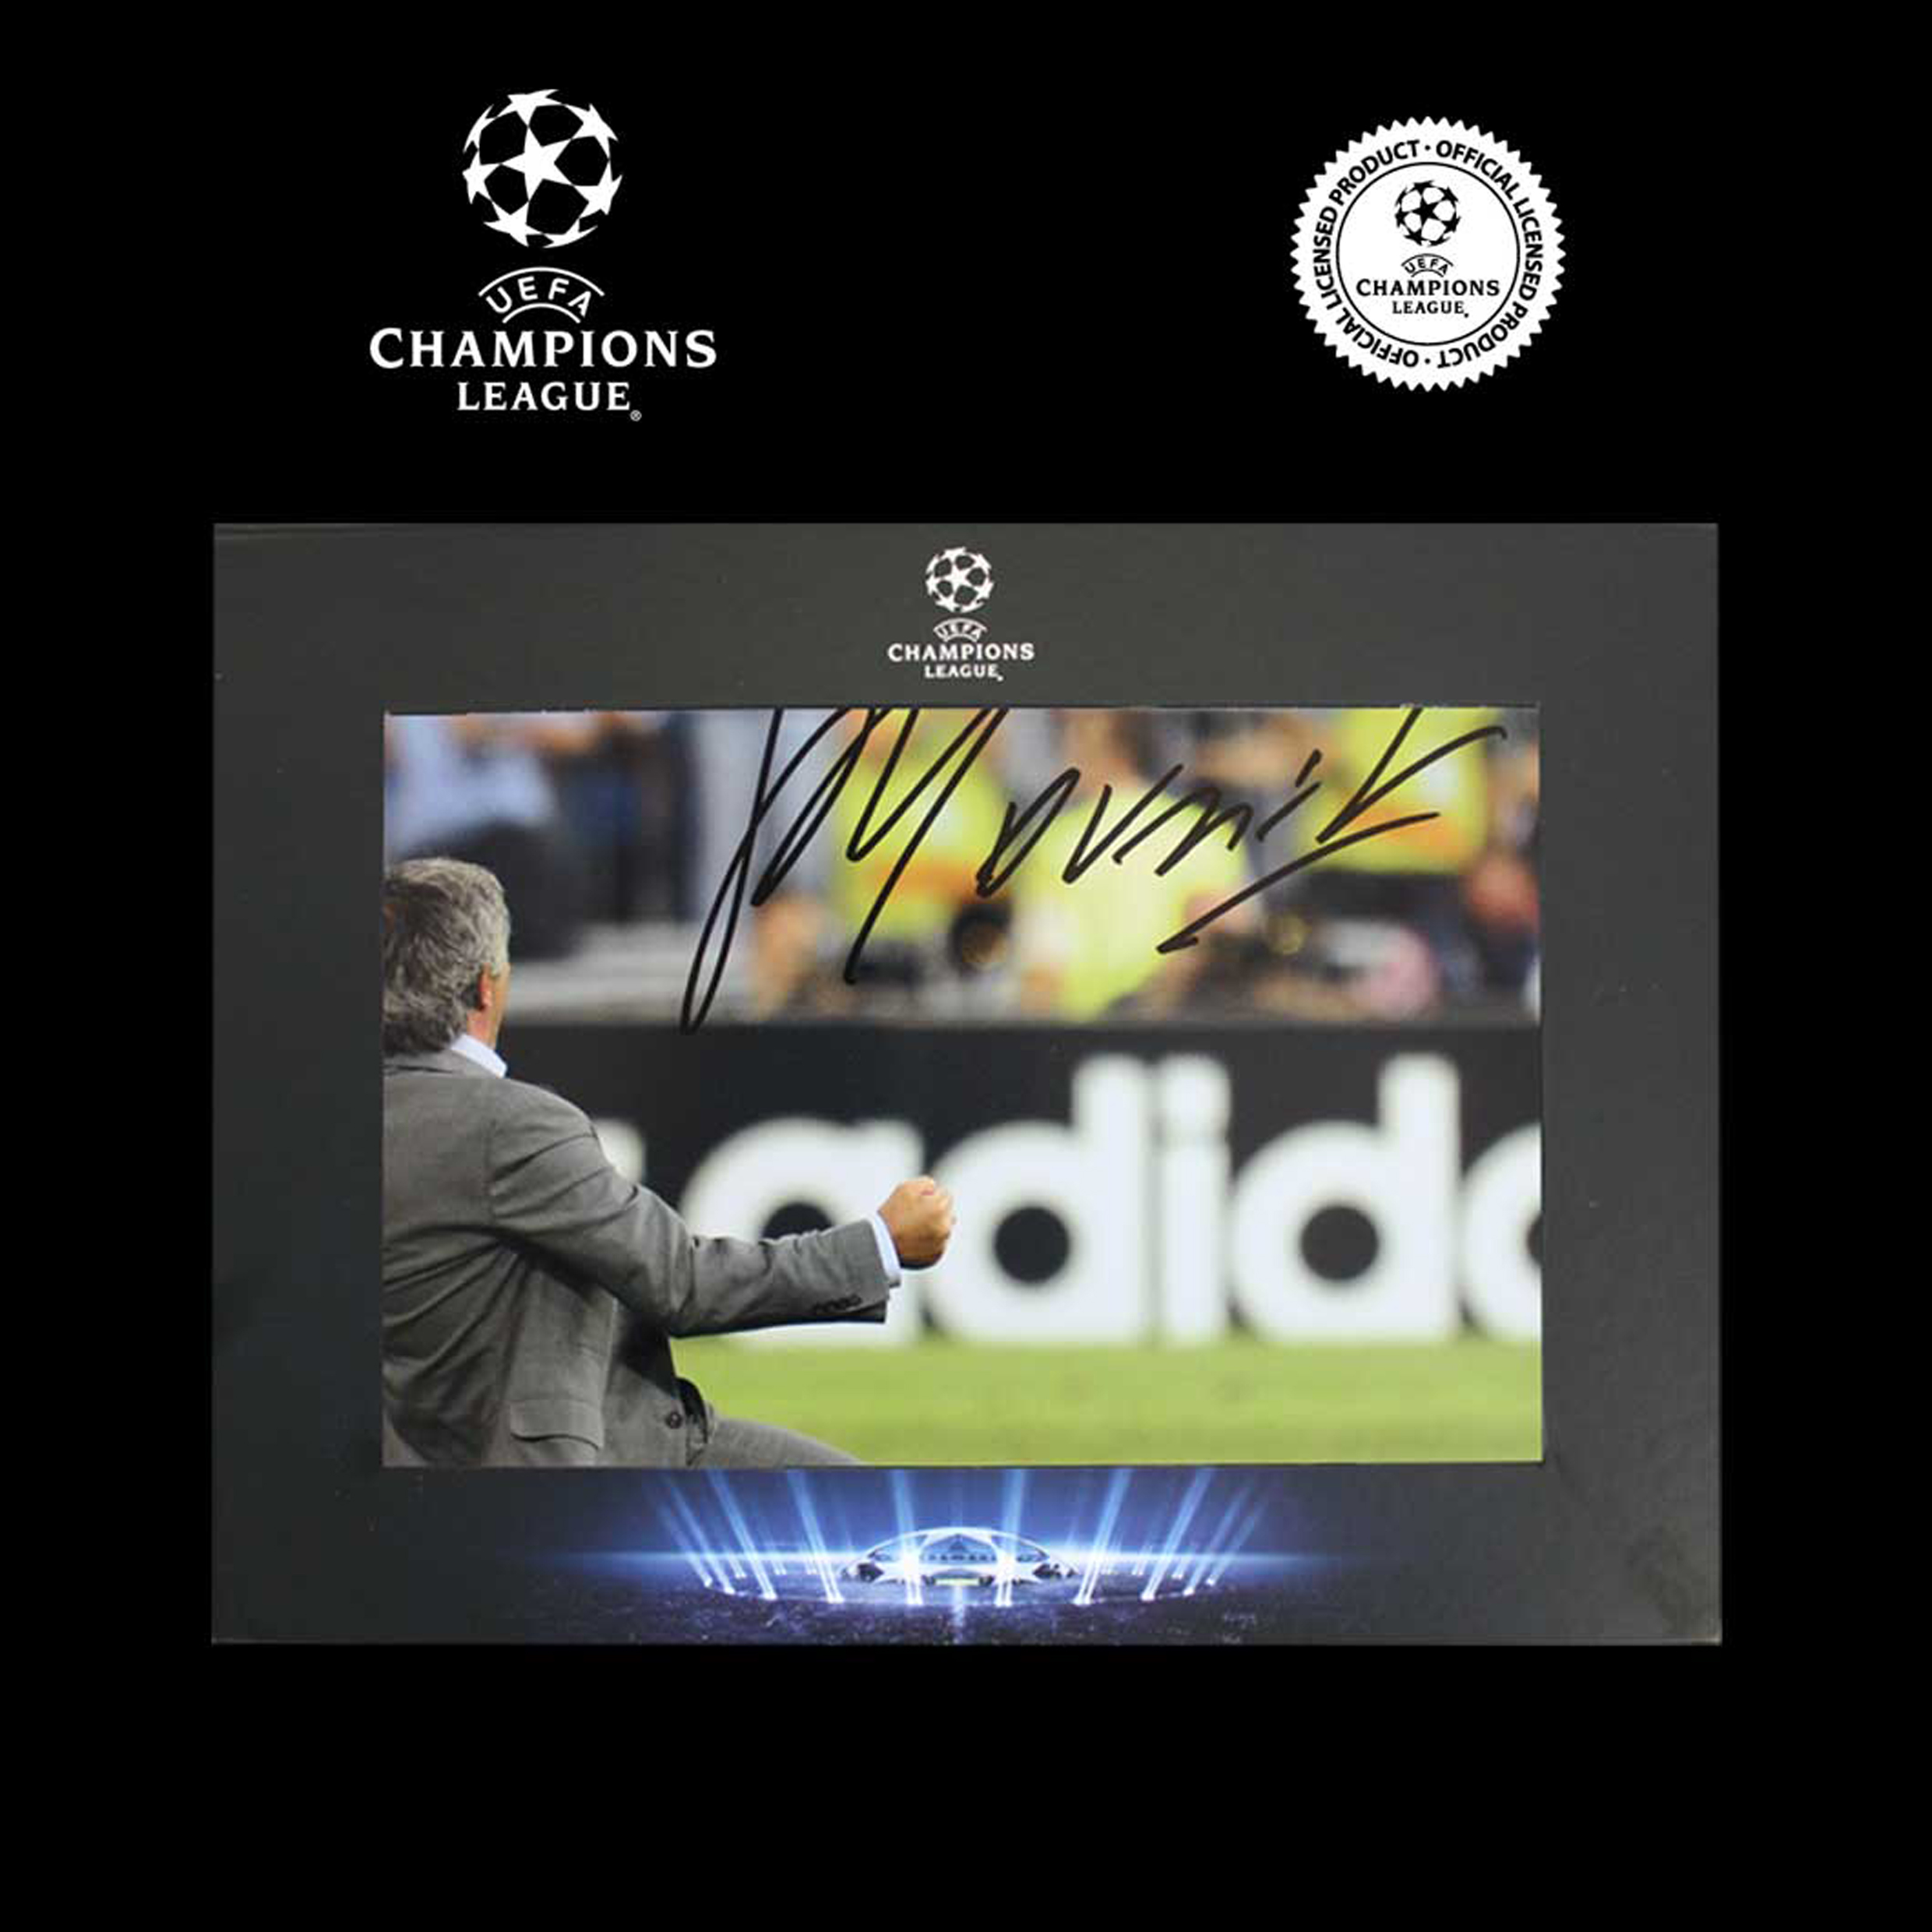 UEFA Champions League Jose Mourinho Signed Madrid Photo in Deluxe Packaging: Celebration